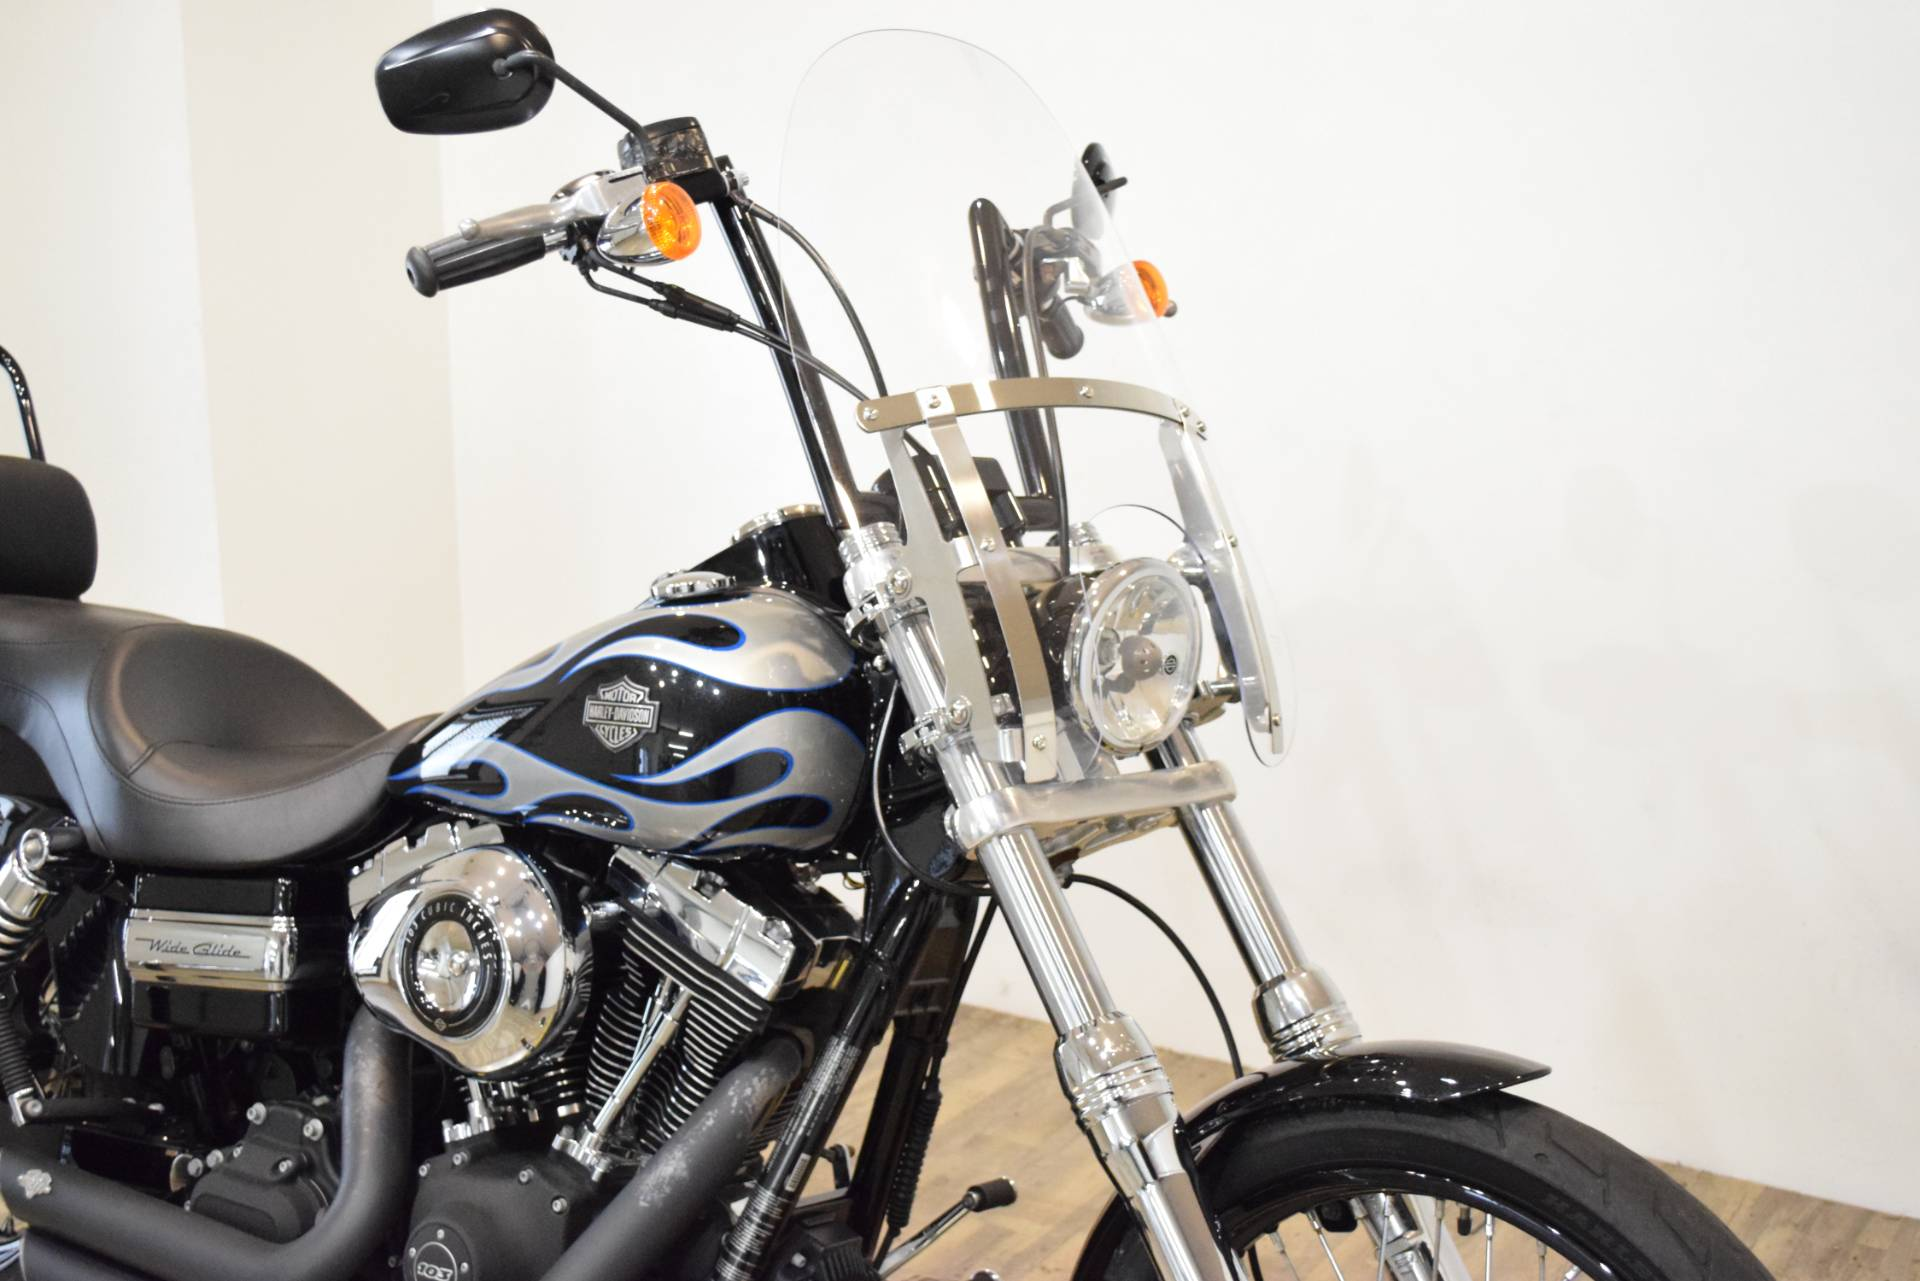 2013 Harley-Davidson Dyna® Wide Glide® in Wauconda, Illinois - Photo 3